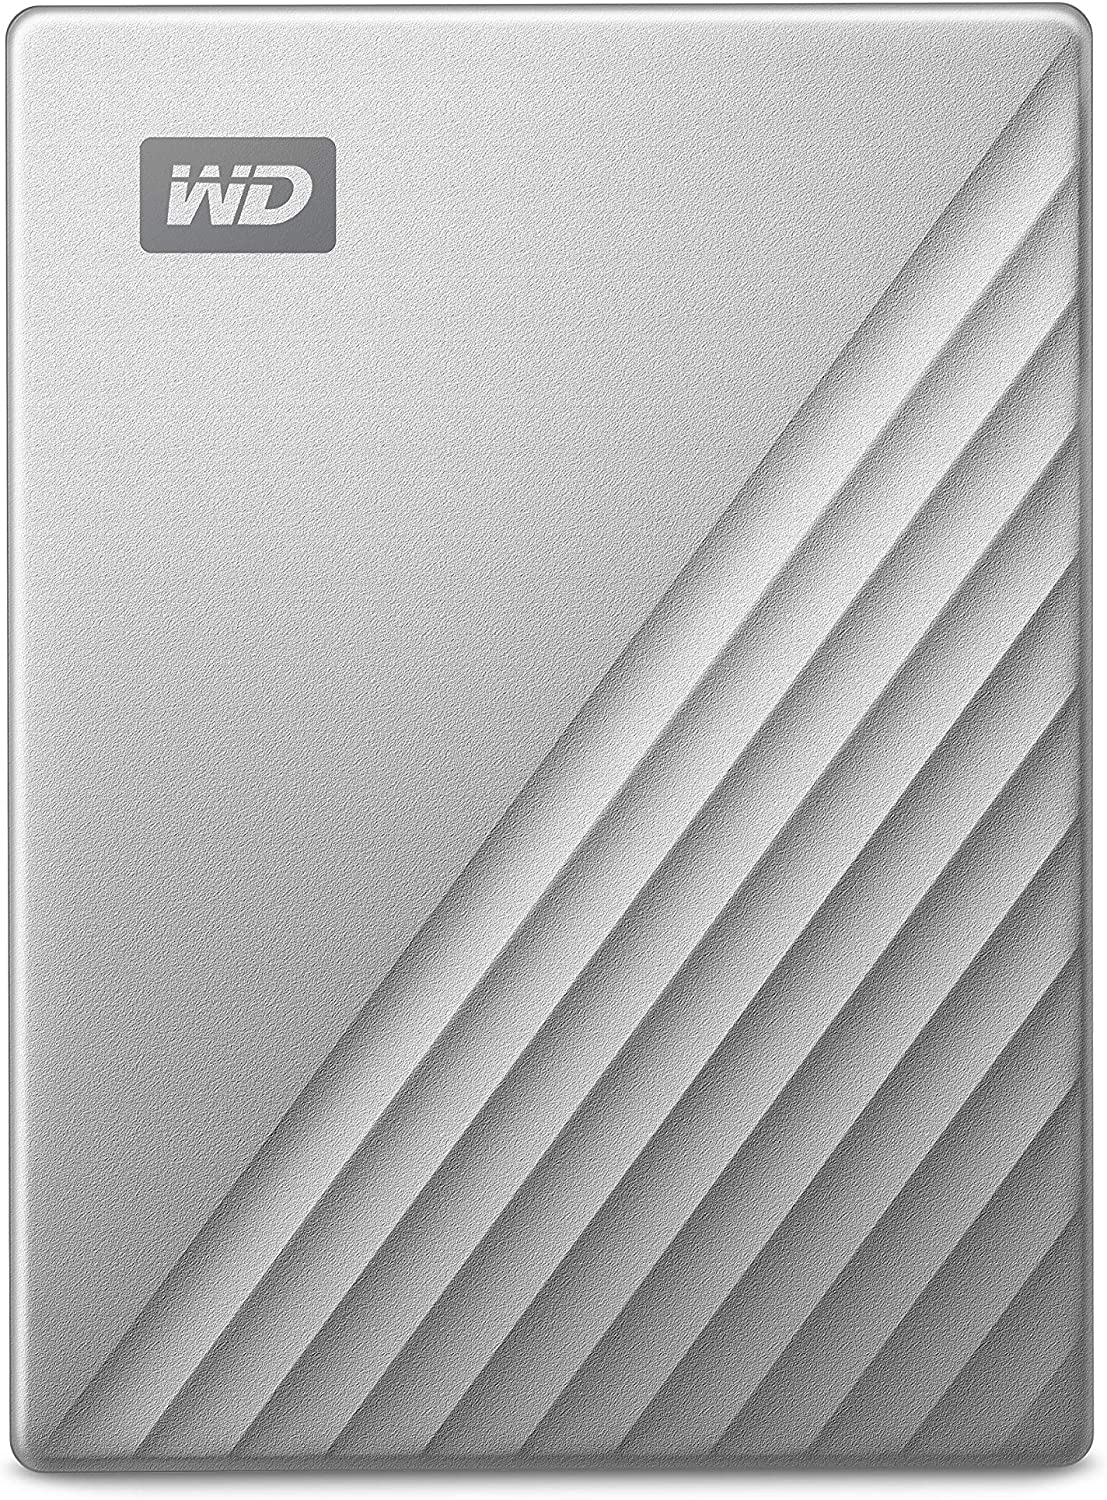 WD 5TB My Passport Ultra for Mac Silver Portable External Hard Drive, USB-C - WDBPMV0050BSL-WESN